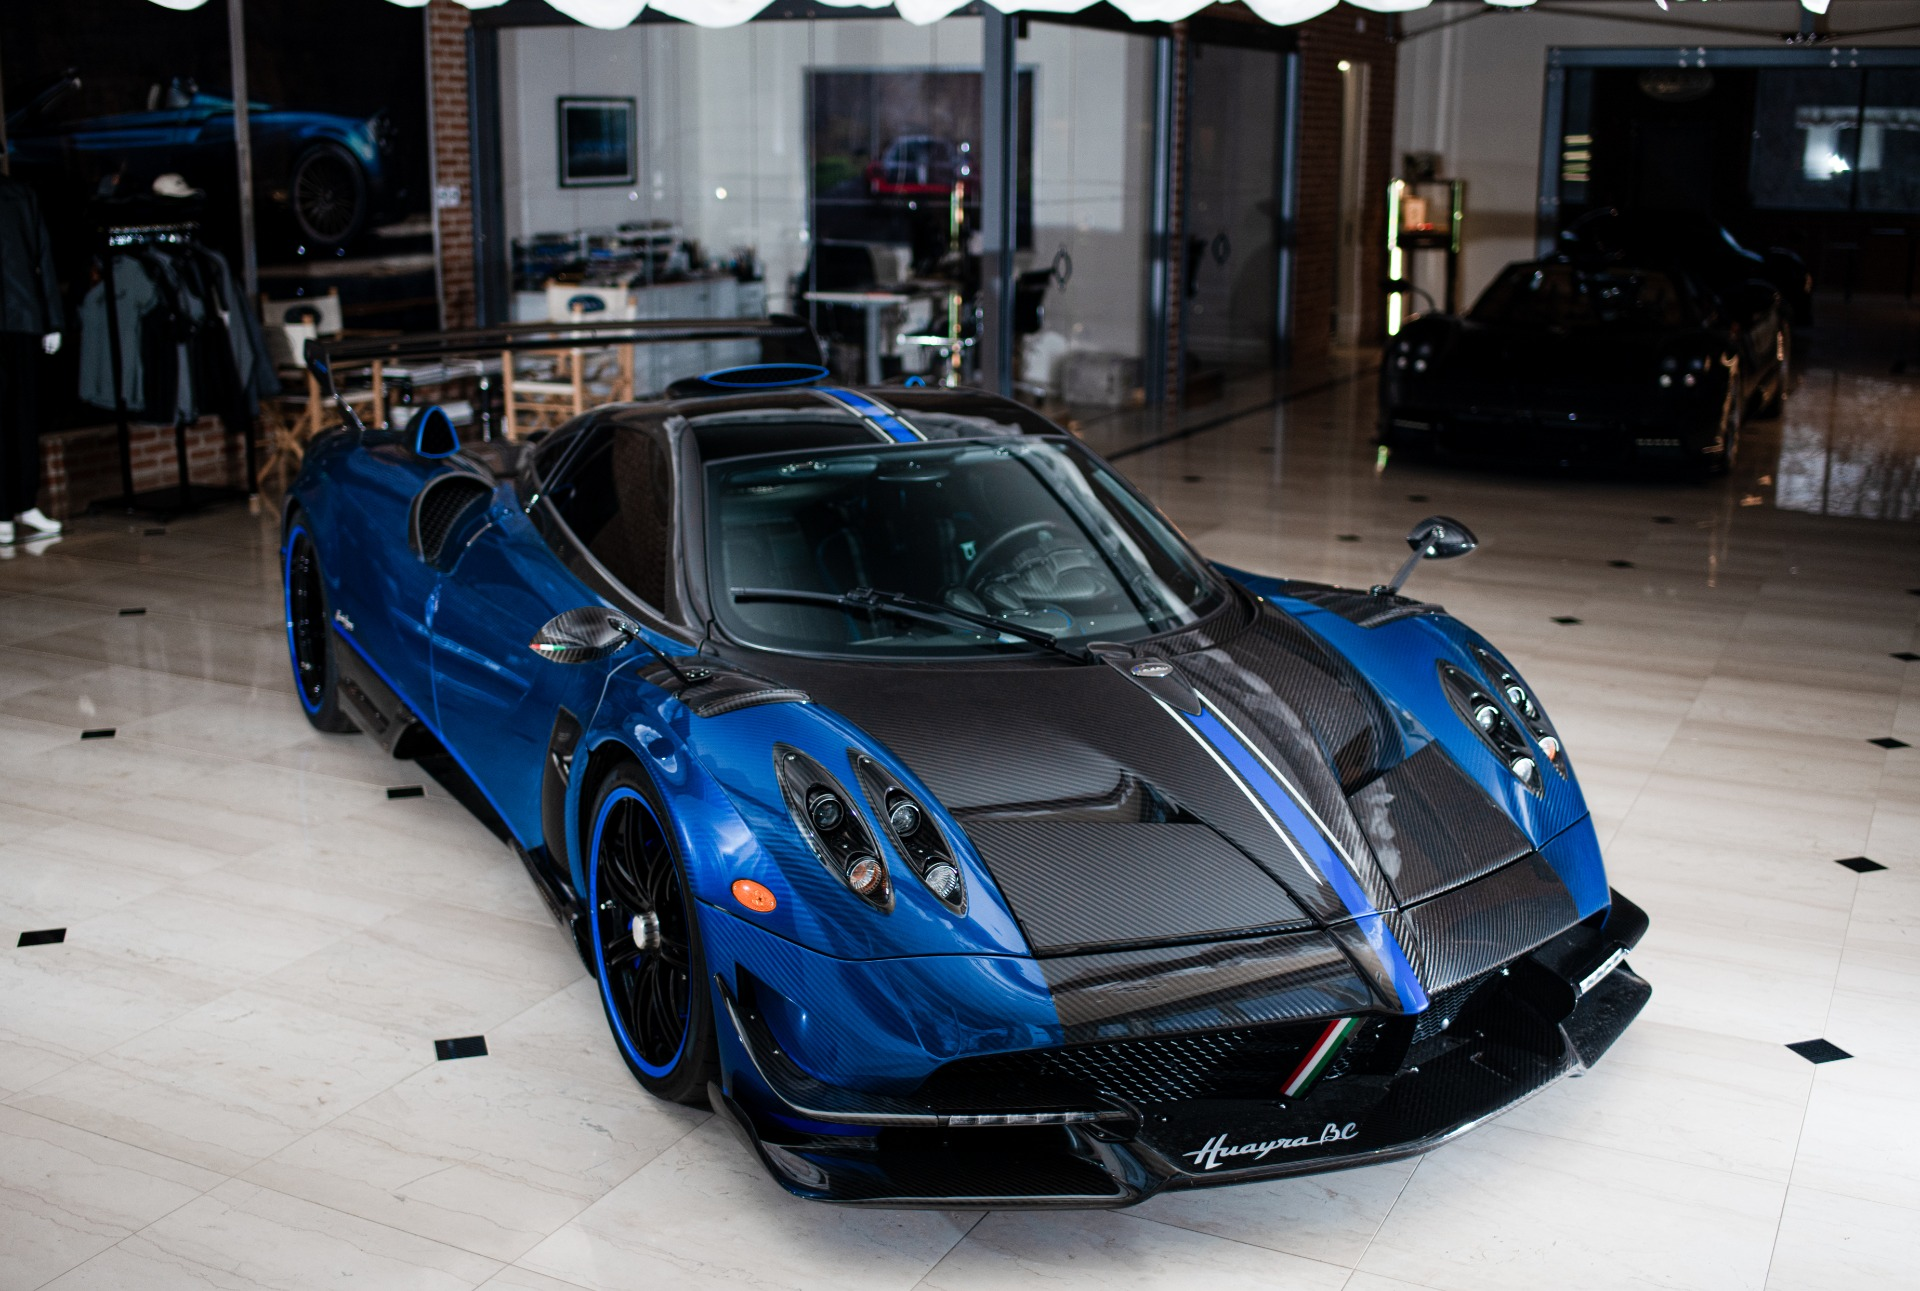 Used 2017 Pagani Huayra BC Macchina Volante For Sale In Greenwich, CT 3051_p5